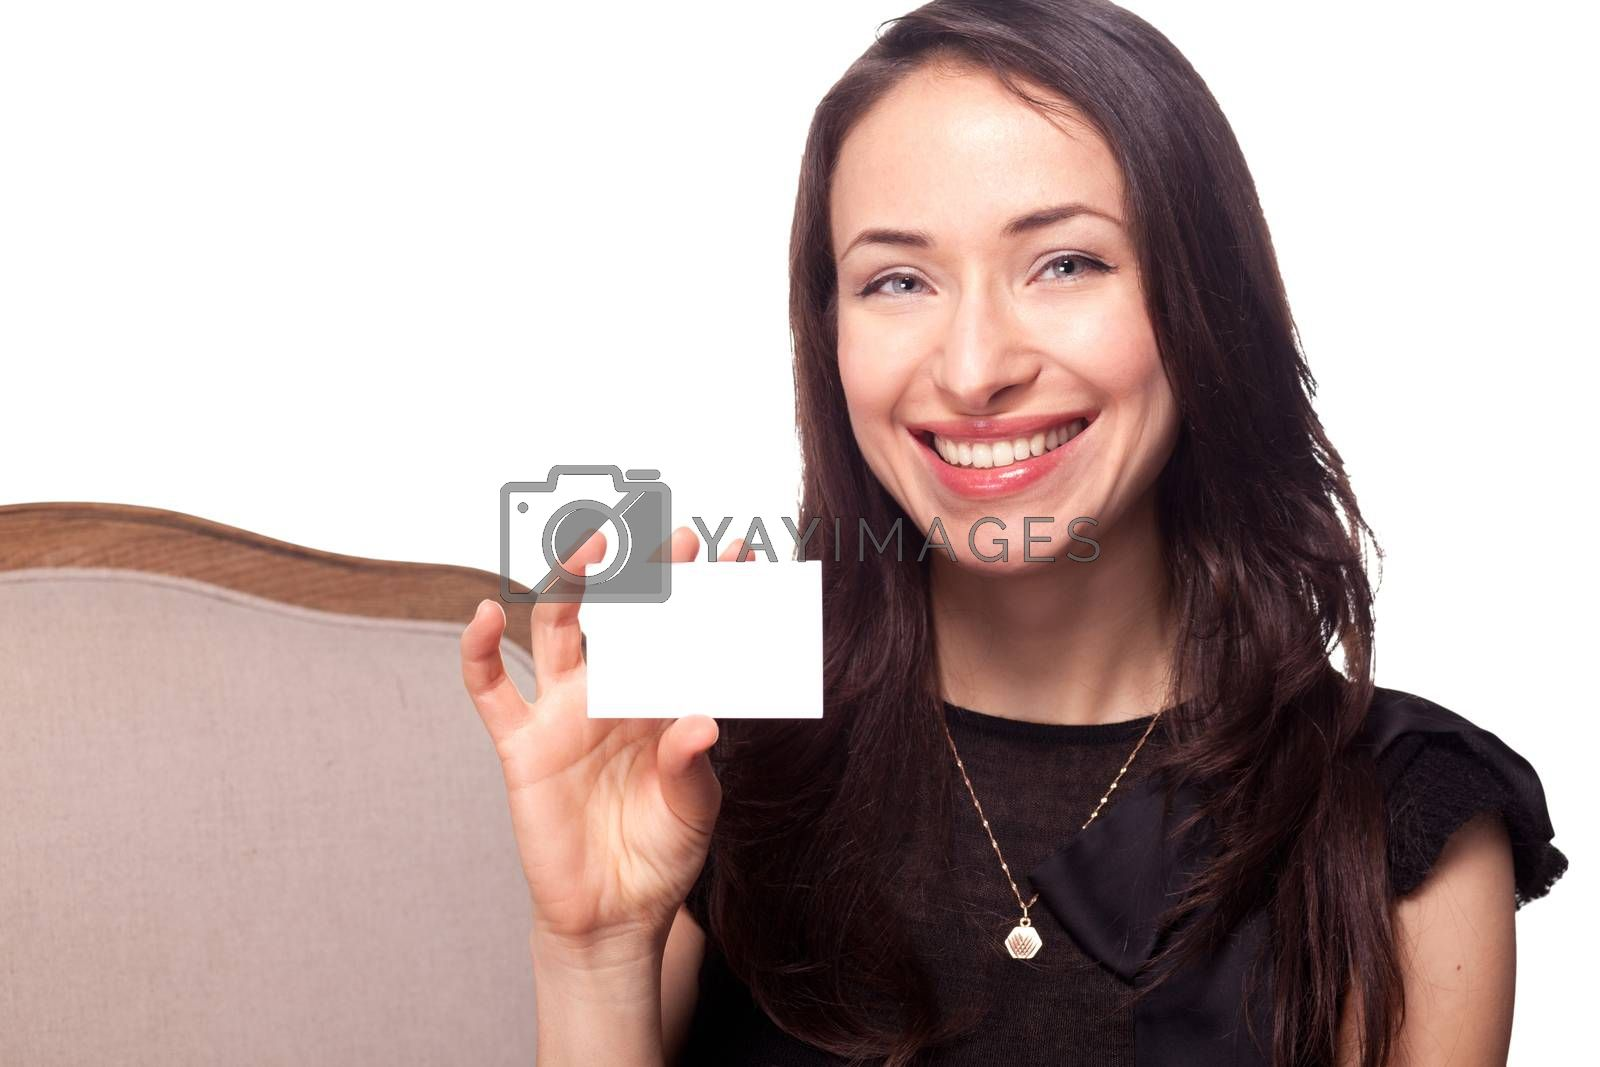 Girl holding blank business card template and smiling isolated on white